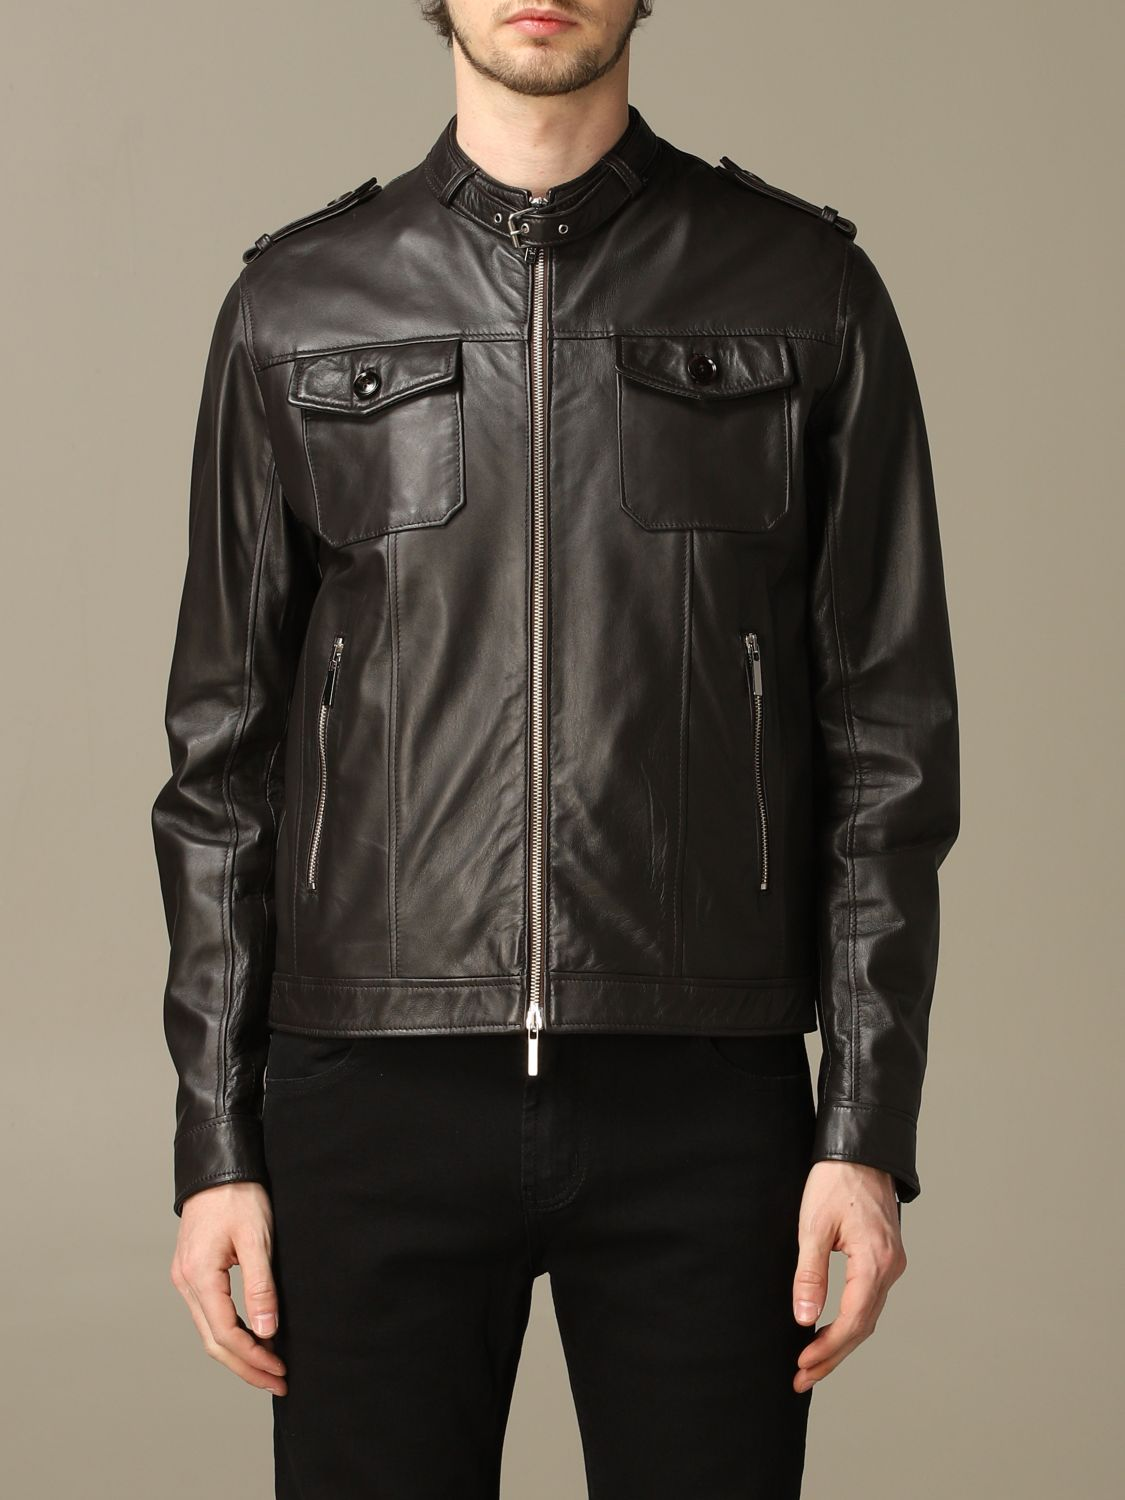 Jacket Alessandro Dell'acqua: Alessandro Dell'acqua leather jacket with zip brown 1